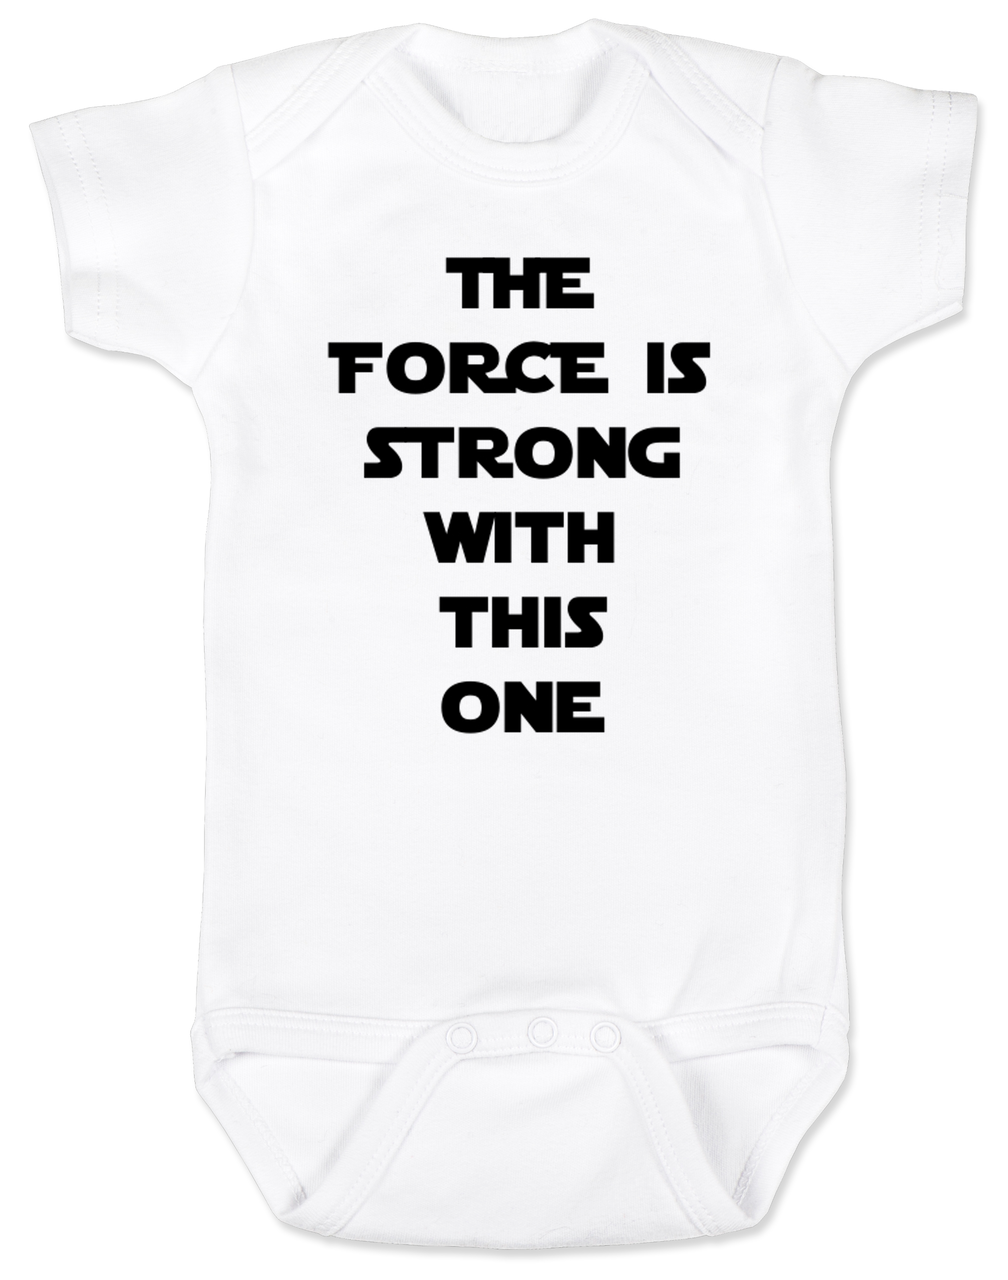 Star Wars Inspired Baby Vest Babygrow Novelty Baby Shower Cartoon Star Wars